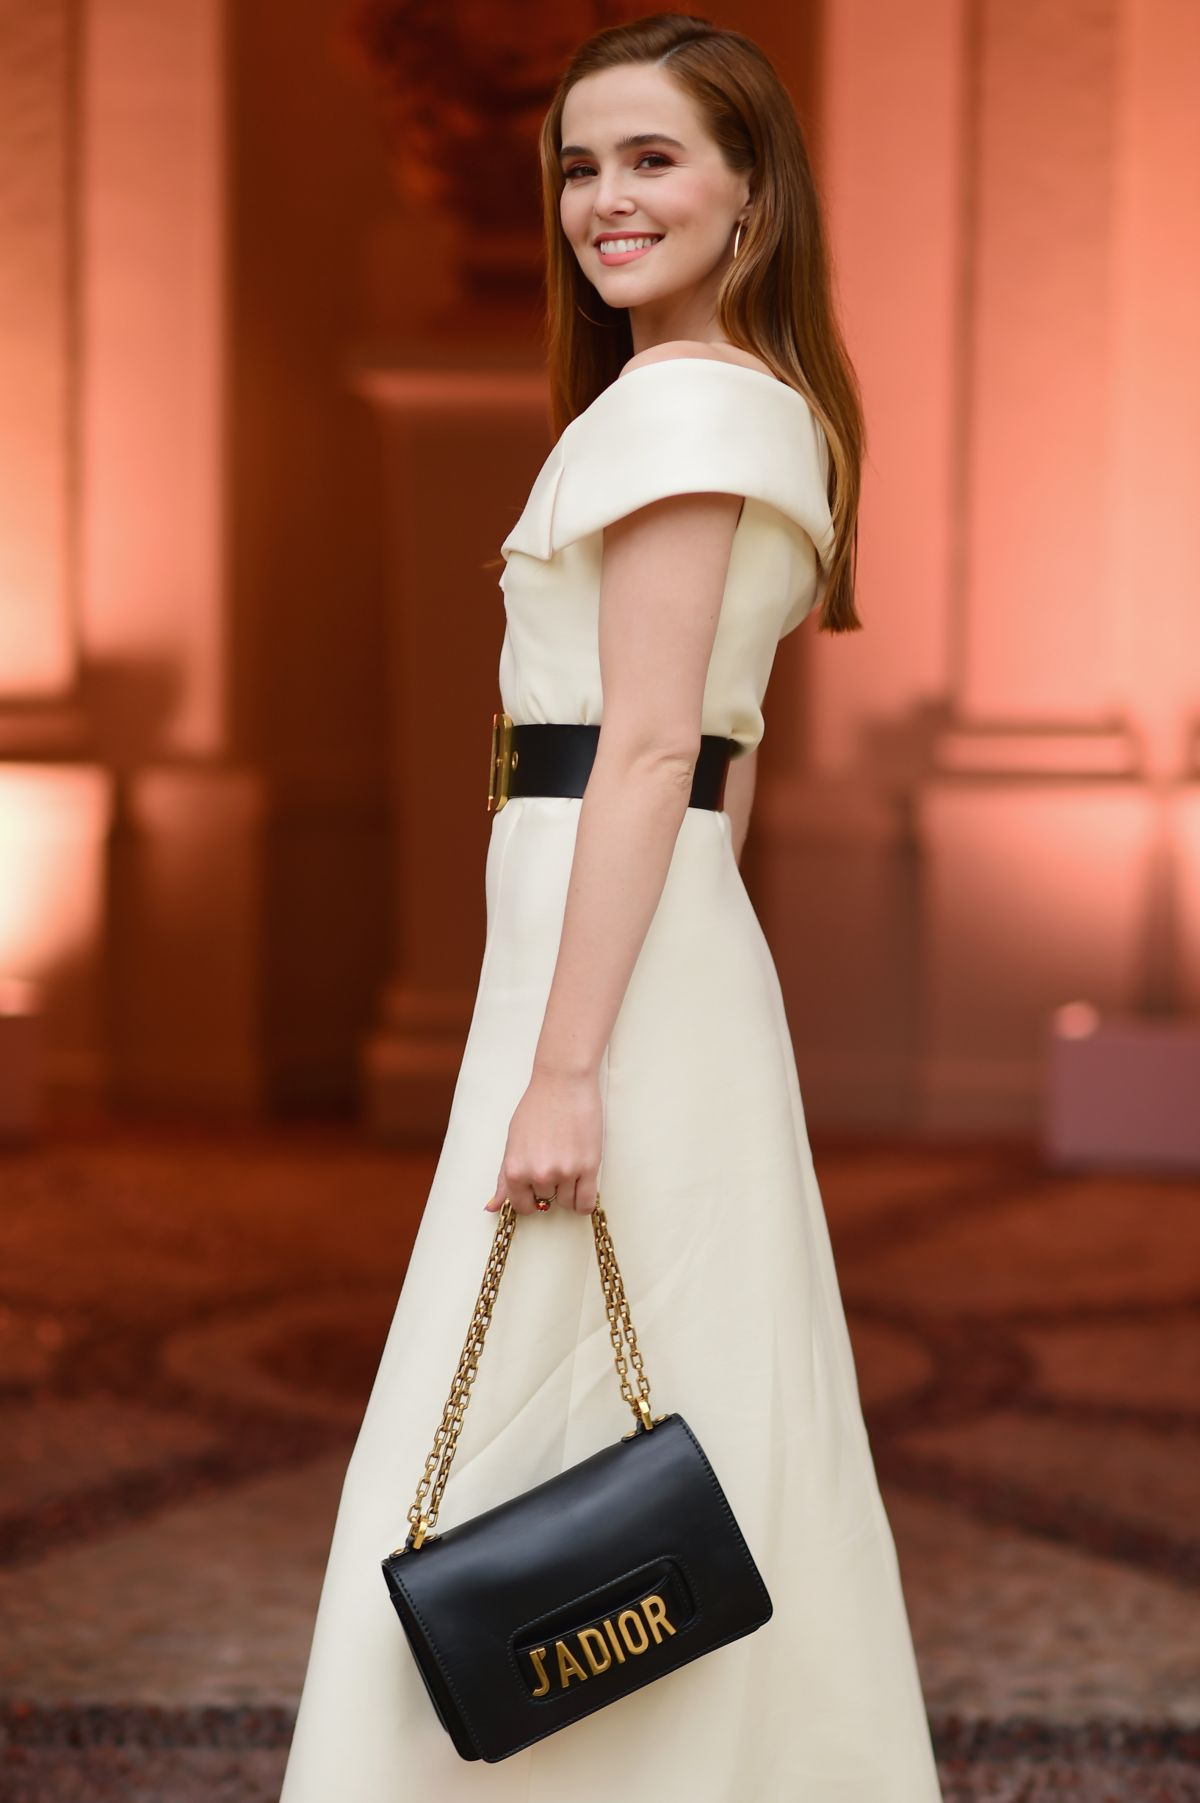 La Colle Noire Dior zoey deutch at parfums christian dior cocktail and dinner at